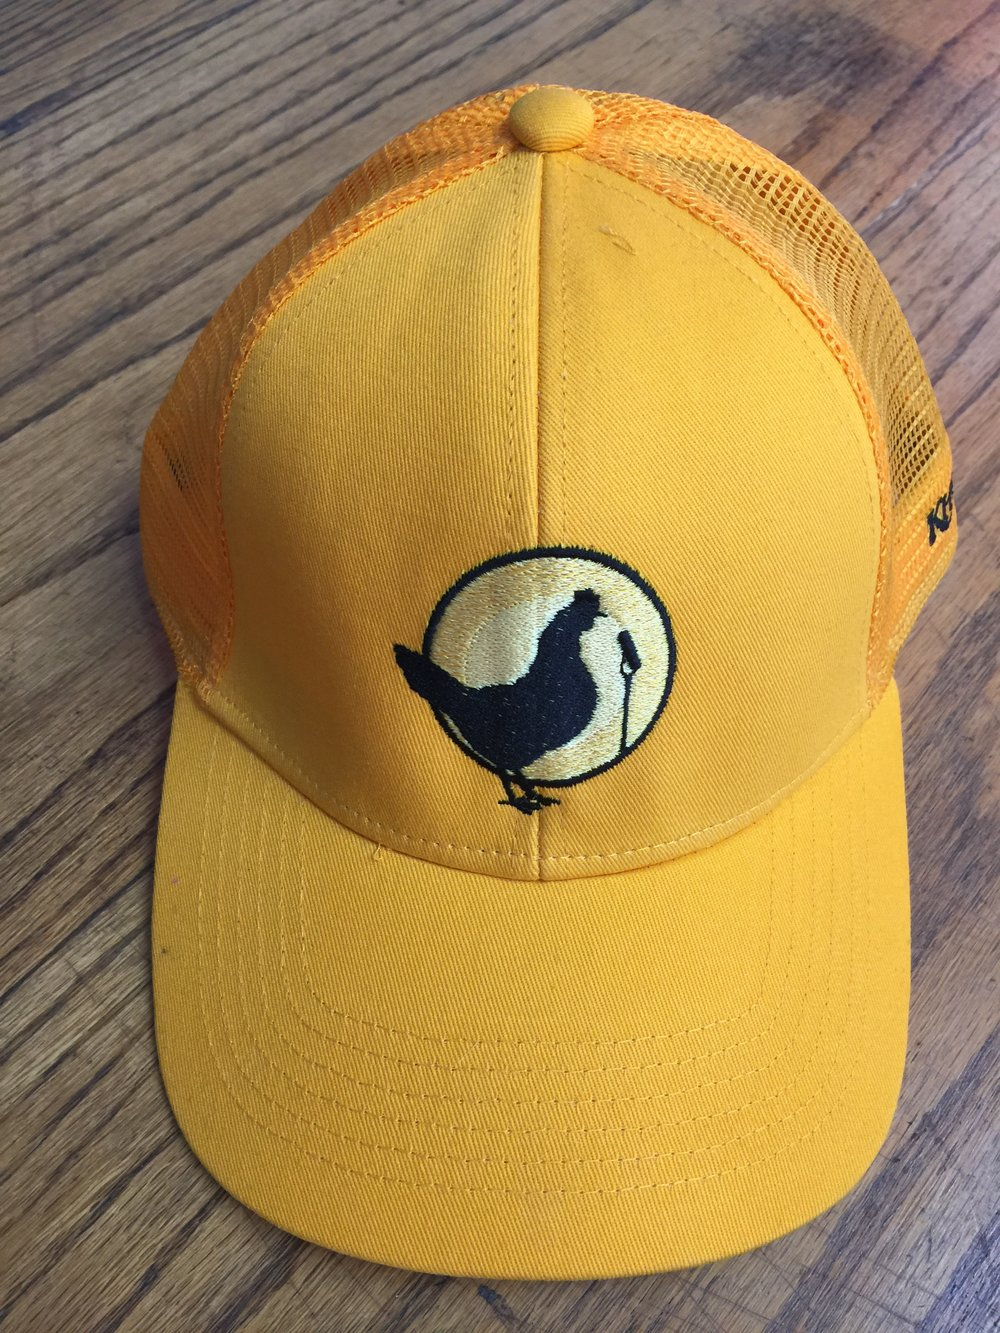 You can get a COOL Yellow Chicken hat with at Fine Feathered Friend Membership! You can get a LIMITED EDITION Black Chicken hat with at Good Cluck Membership!!